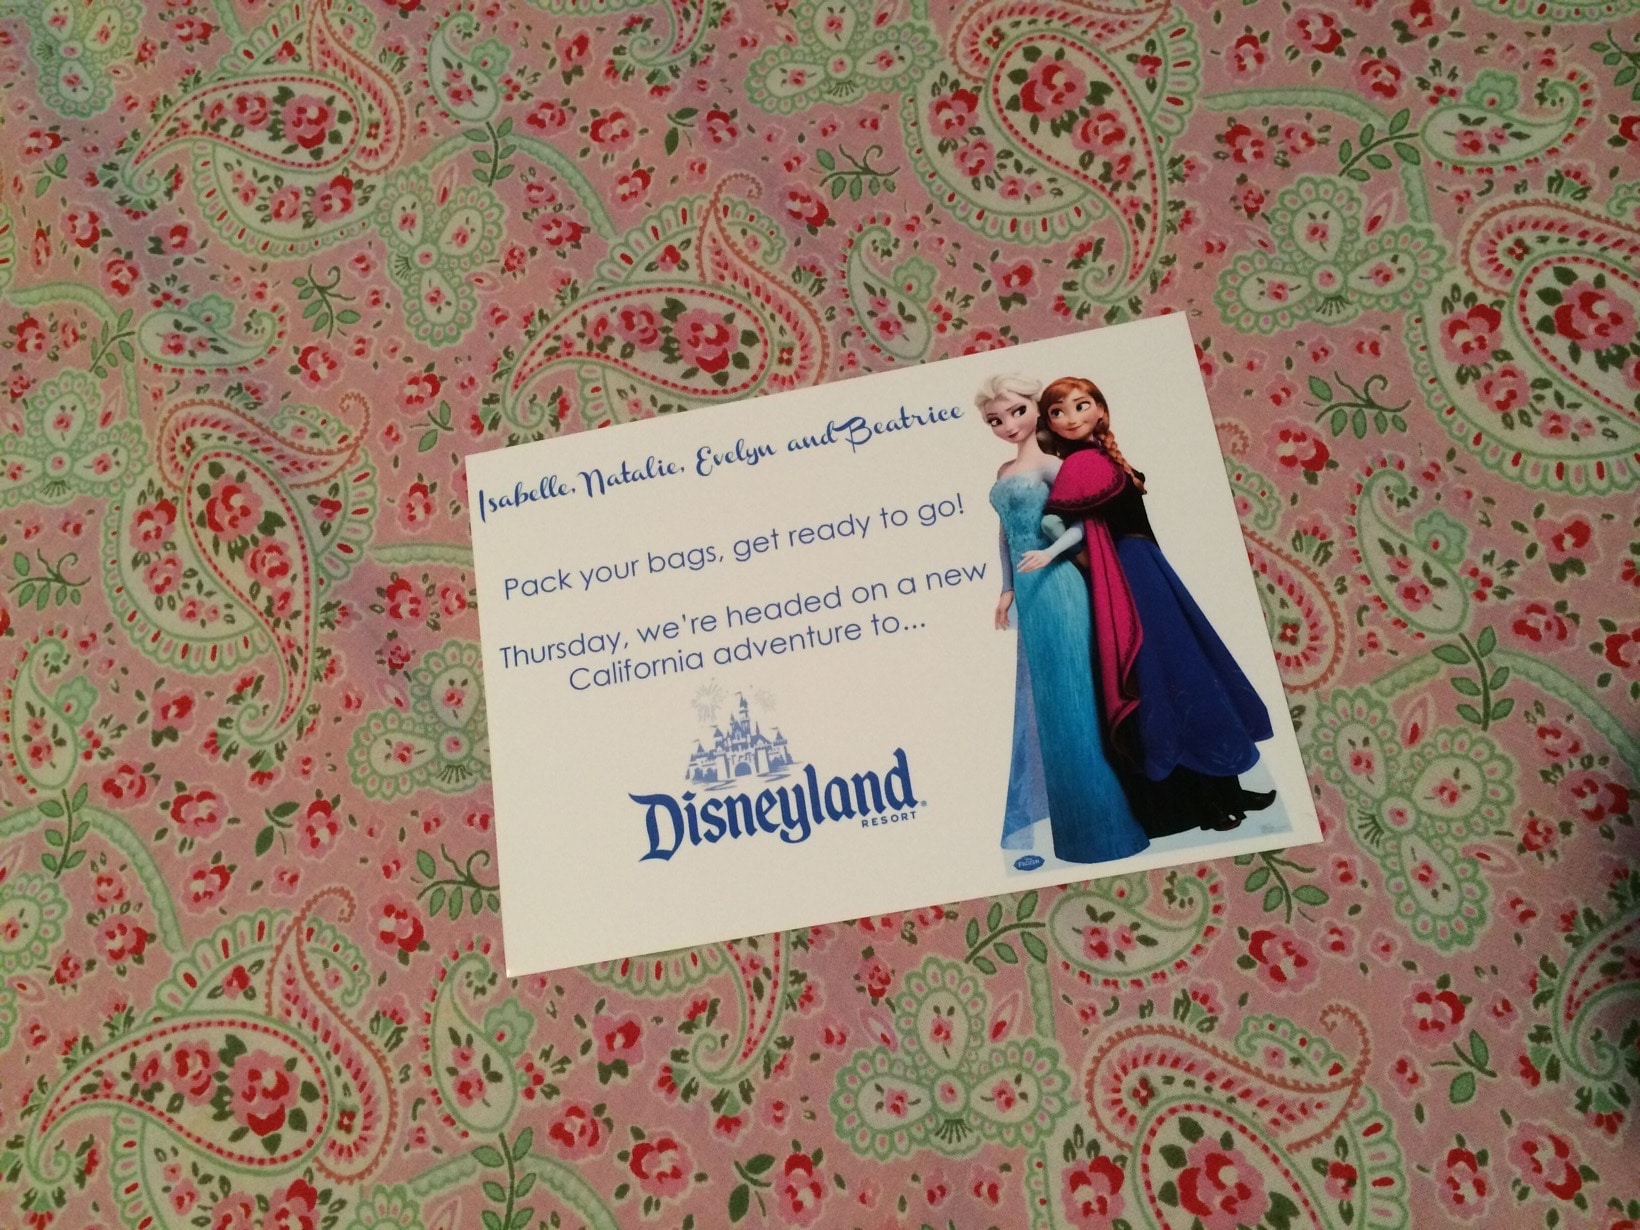 Going to Disneyland with a card